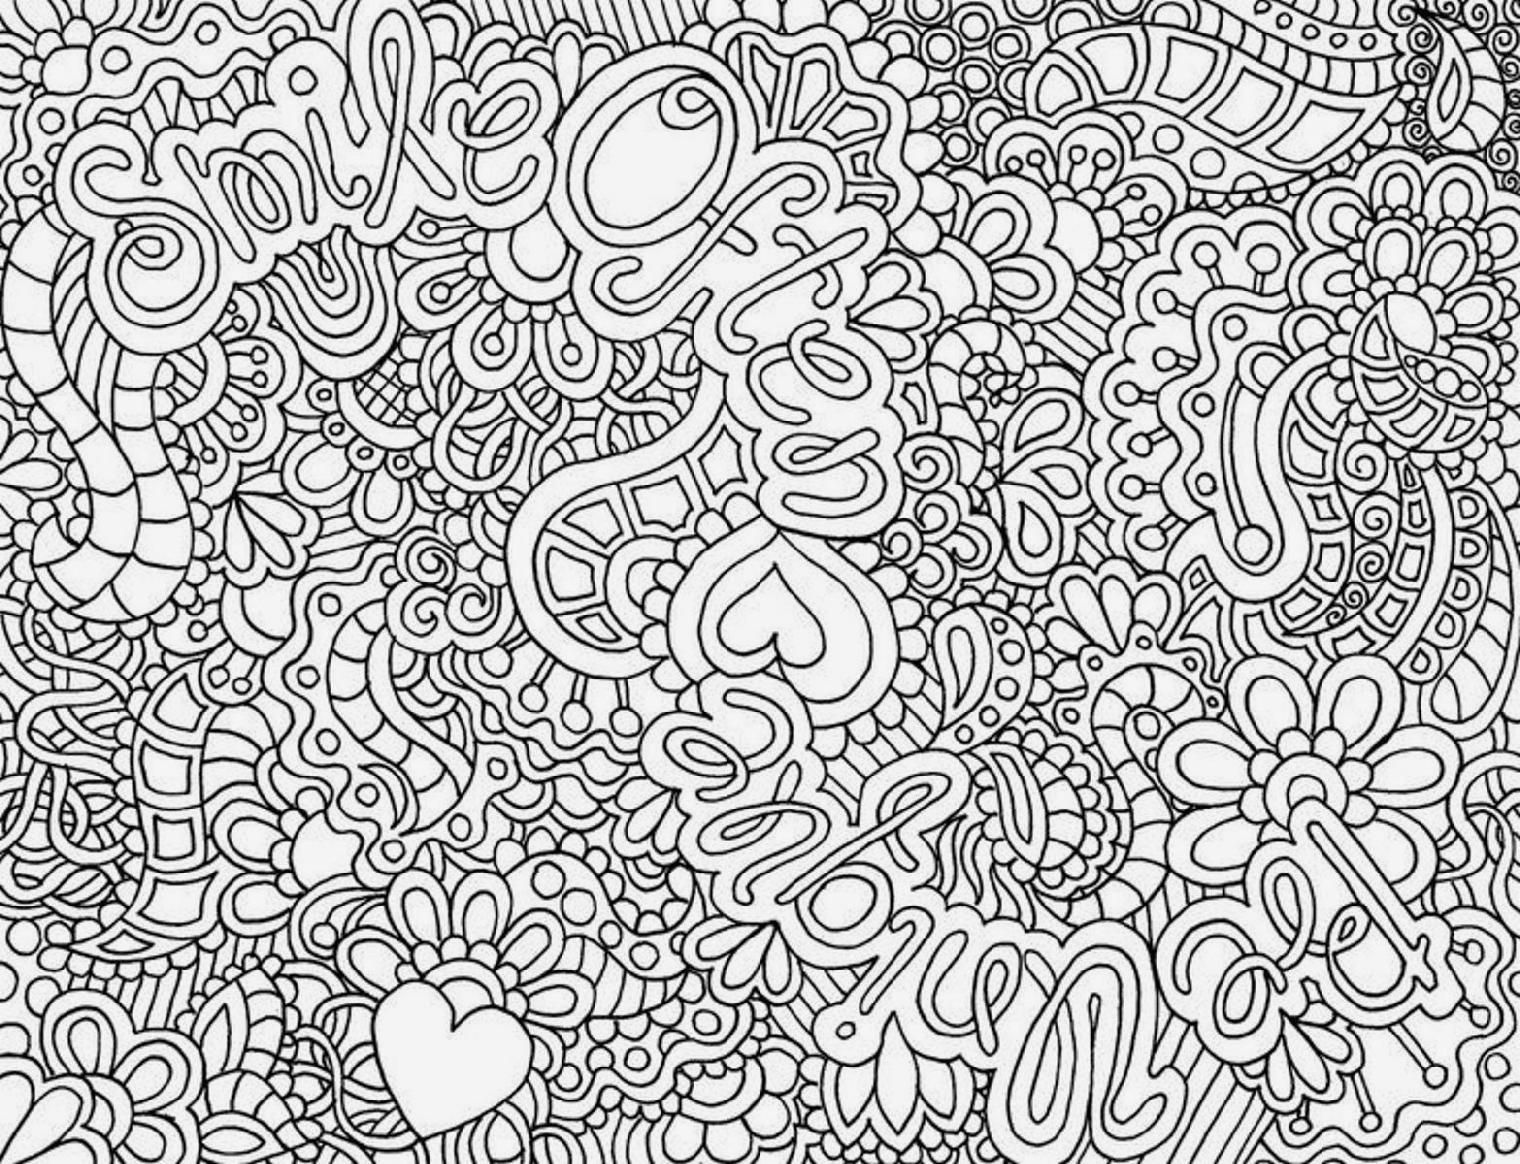 Free online printable adult coloring pages - These Free Printable Coloring Book Pages Of Flowers Provide Hours Of Online And